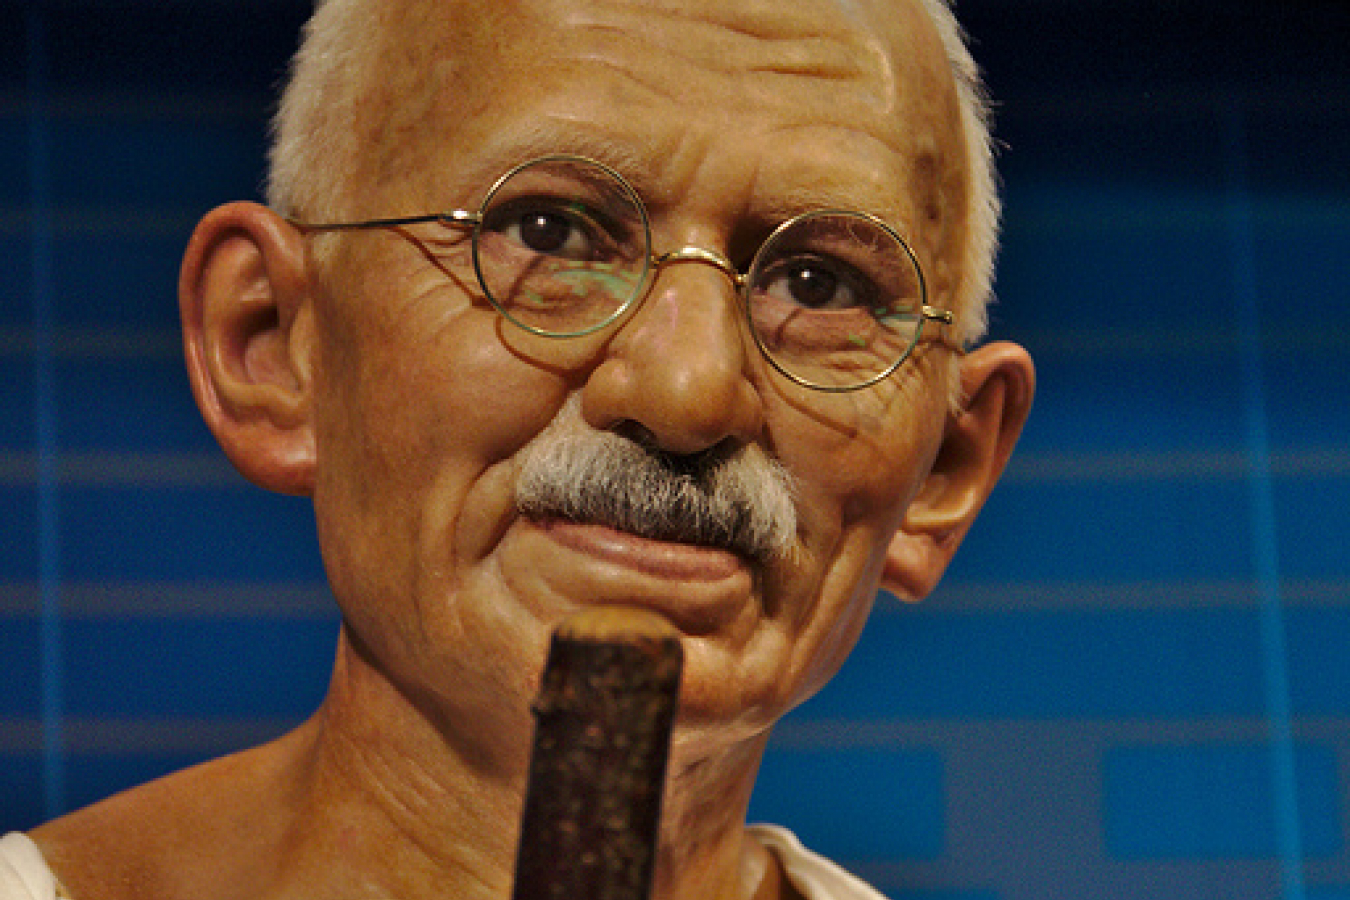 Mahatma Gandhi who studied at University College, London, UK